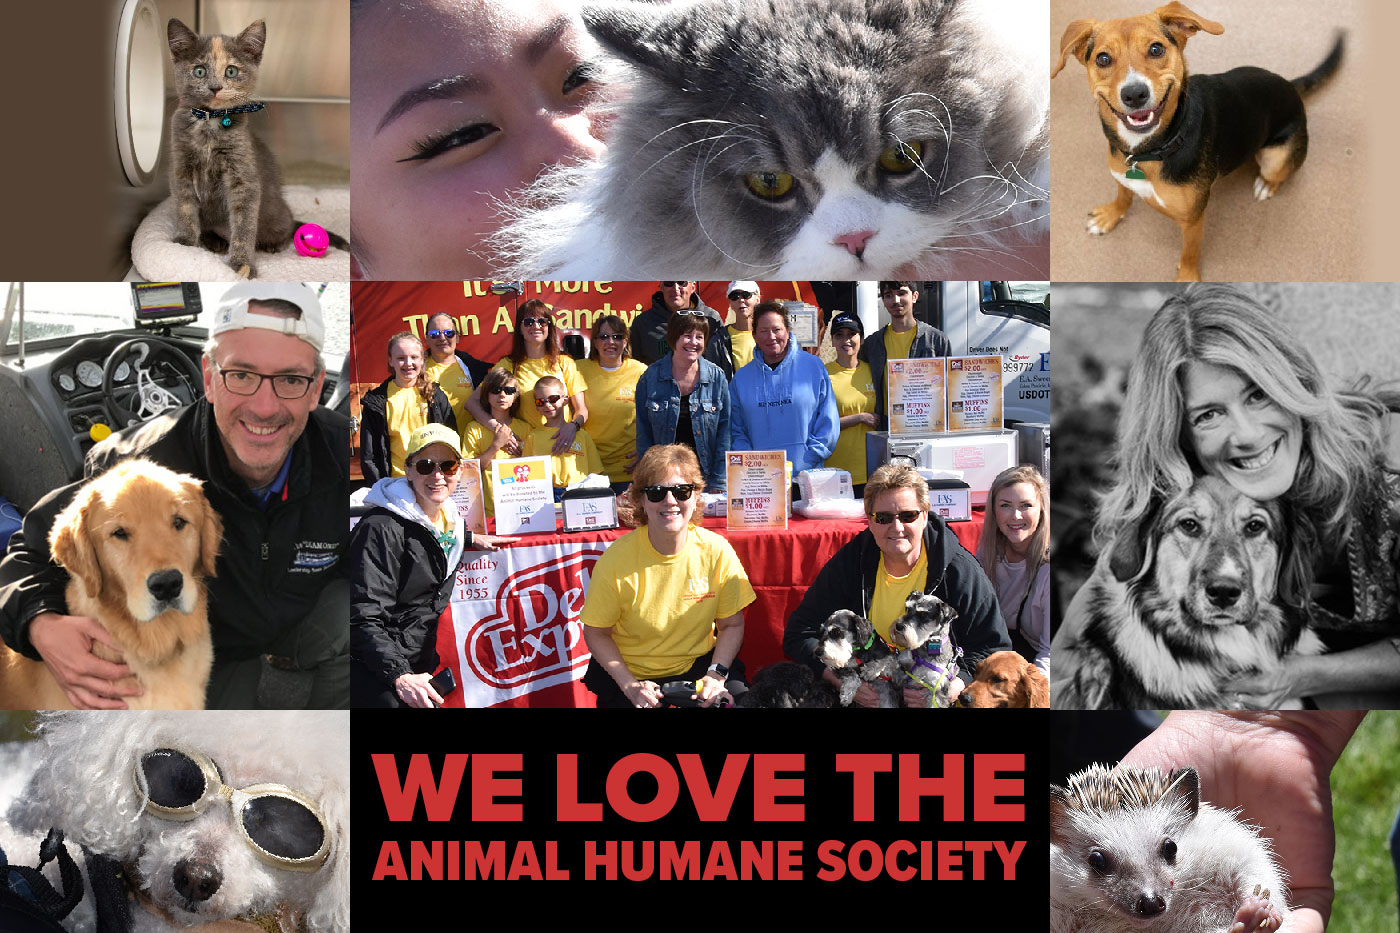 We love the Animal Humane Society image